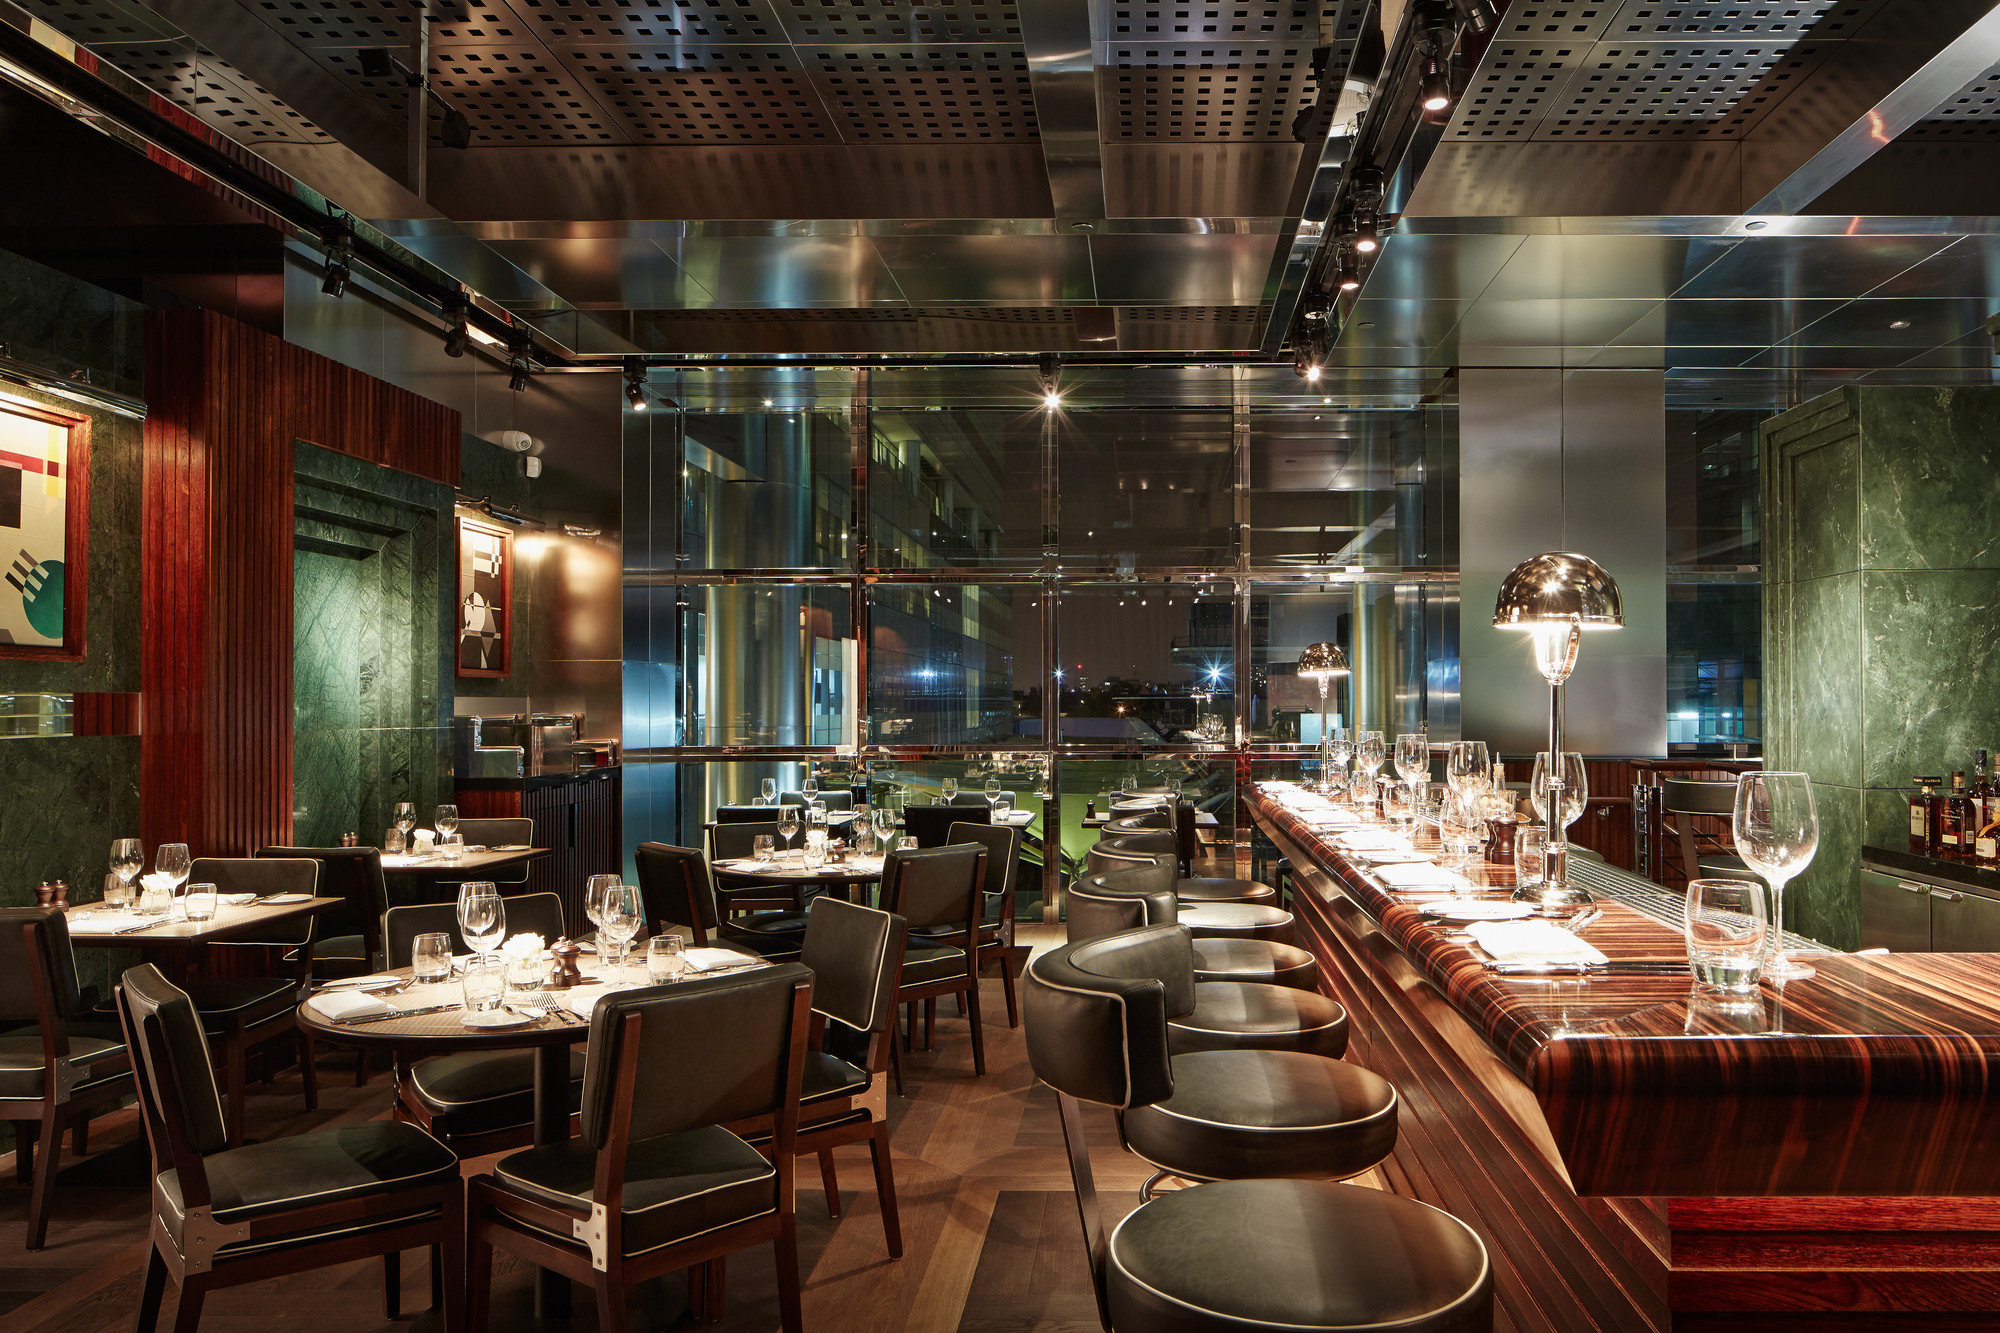 Gallery of 2014 Restaurant & Bar Design Award Winners - 16